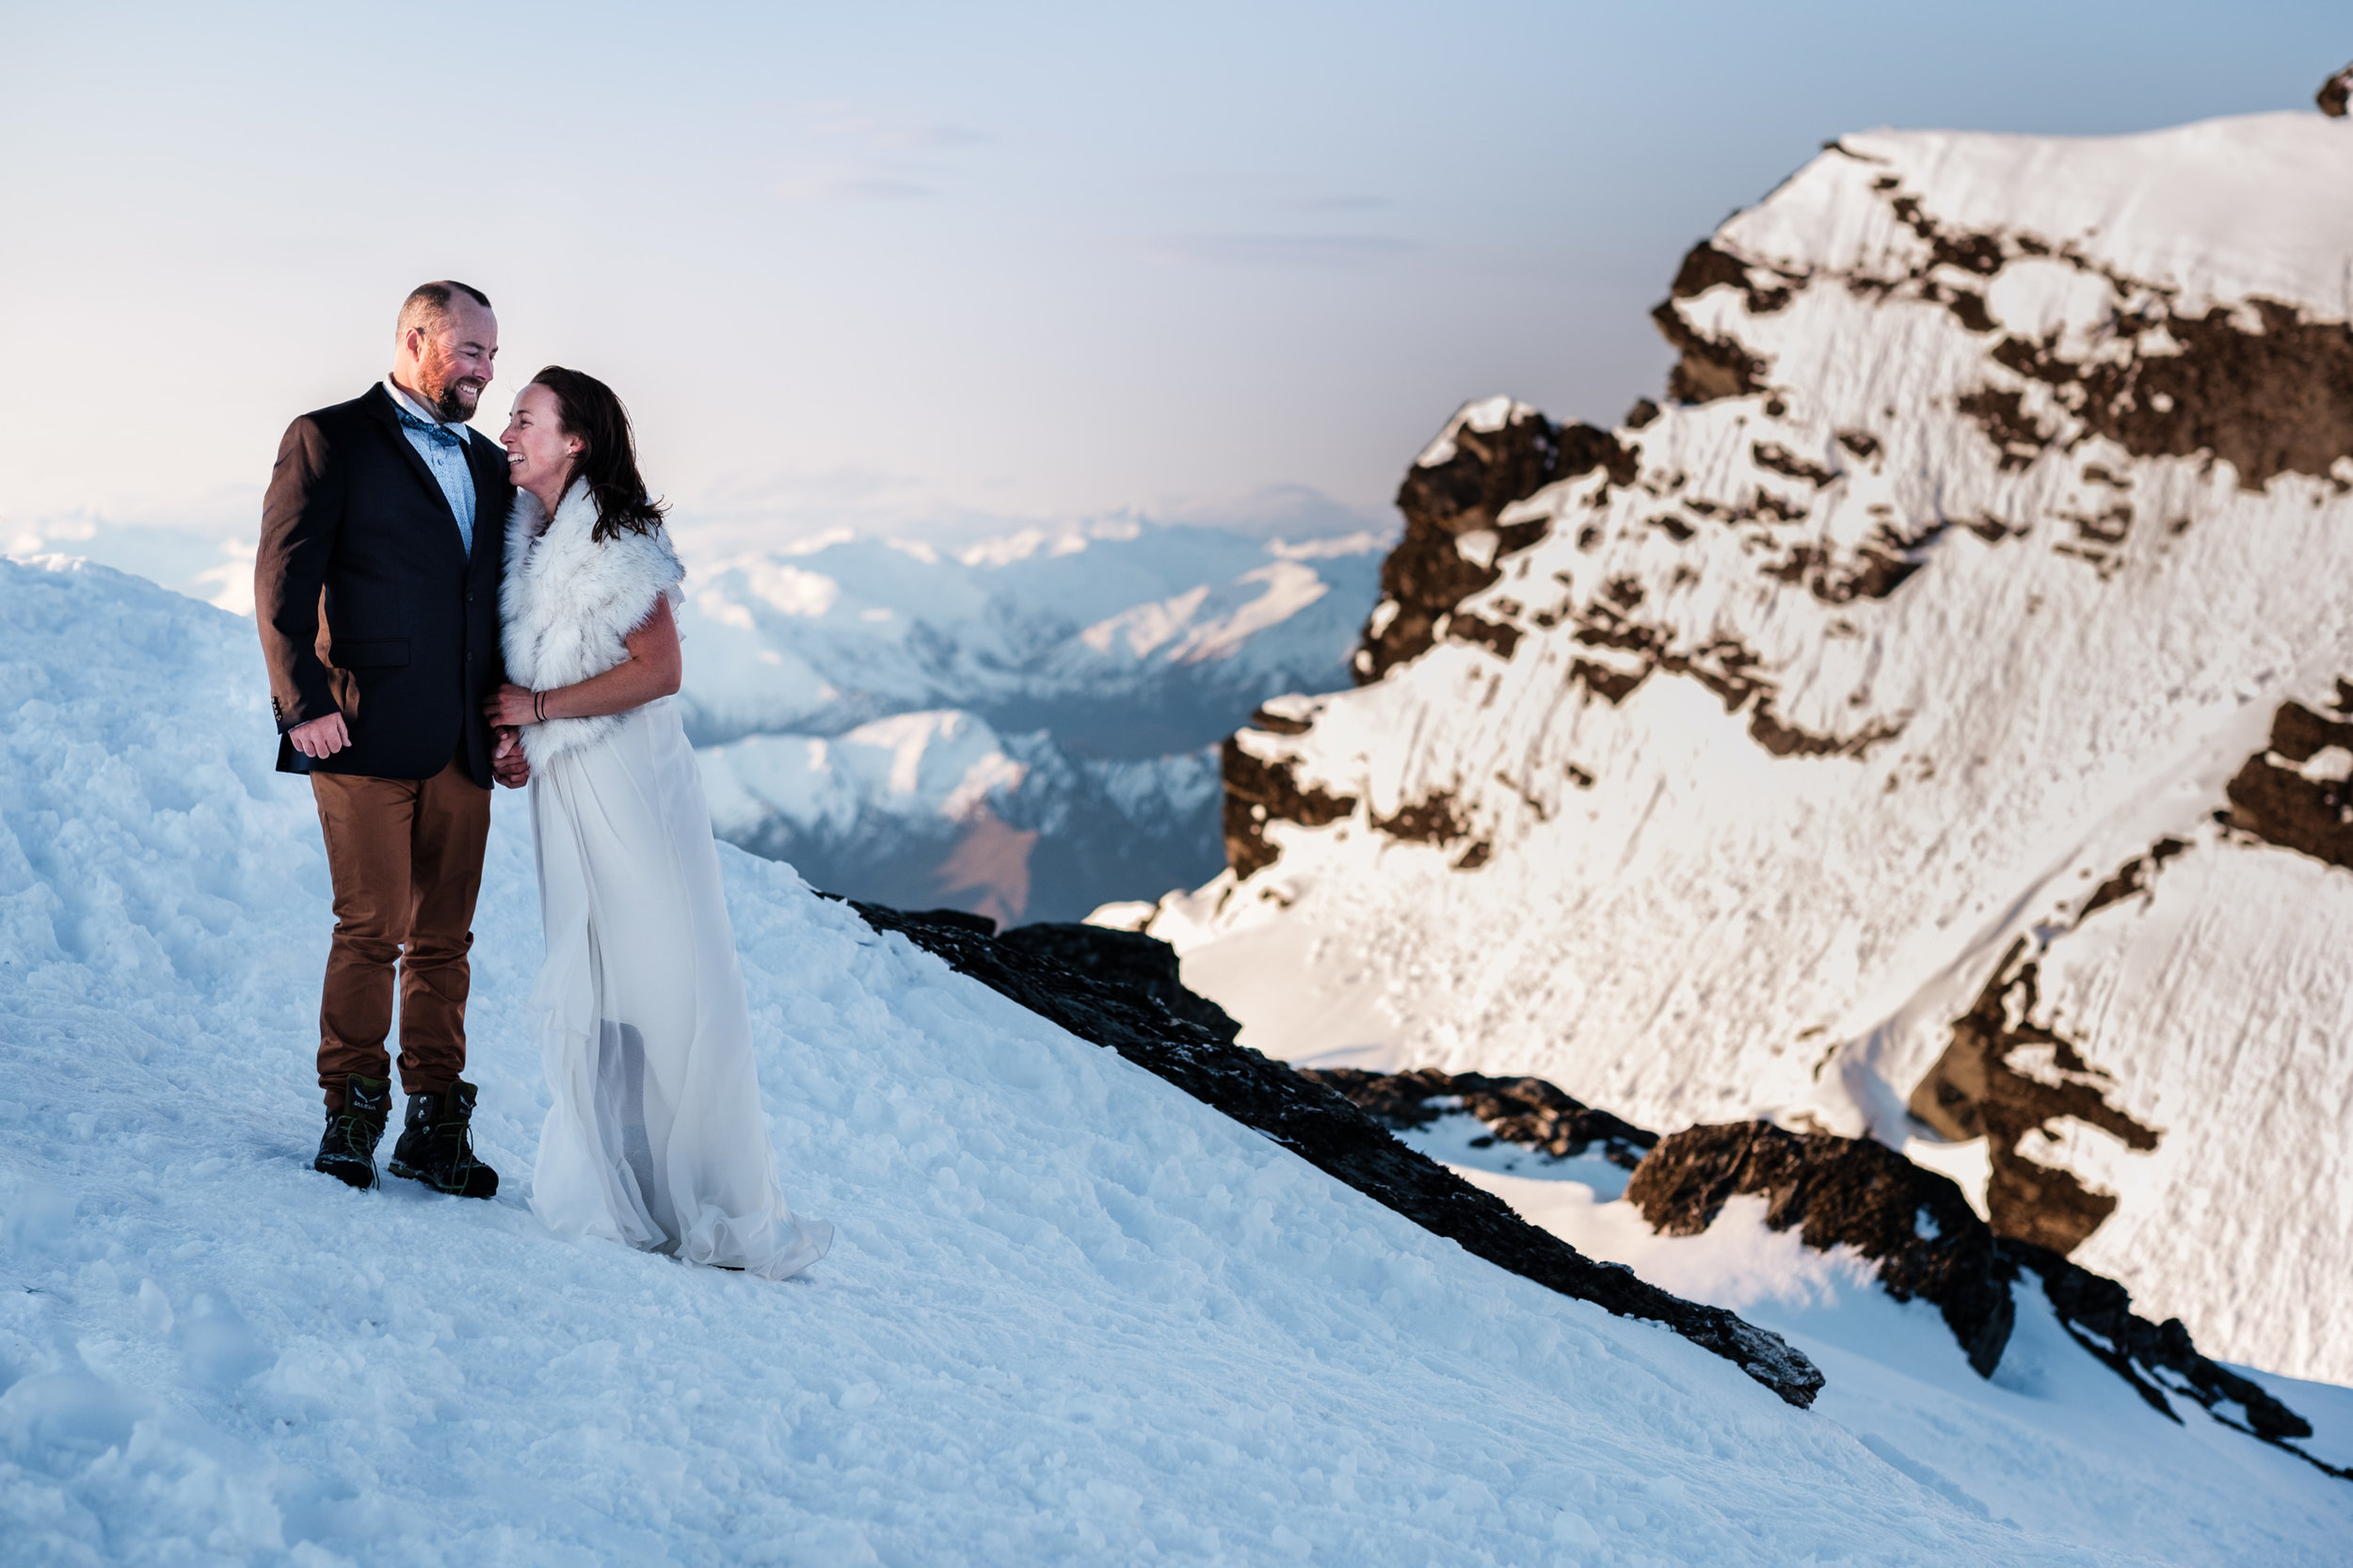 Bride and groom wedding photoshoot at the top the Remarkables in Queenstown. fun, relaxed adventurous wedding photography gold coast